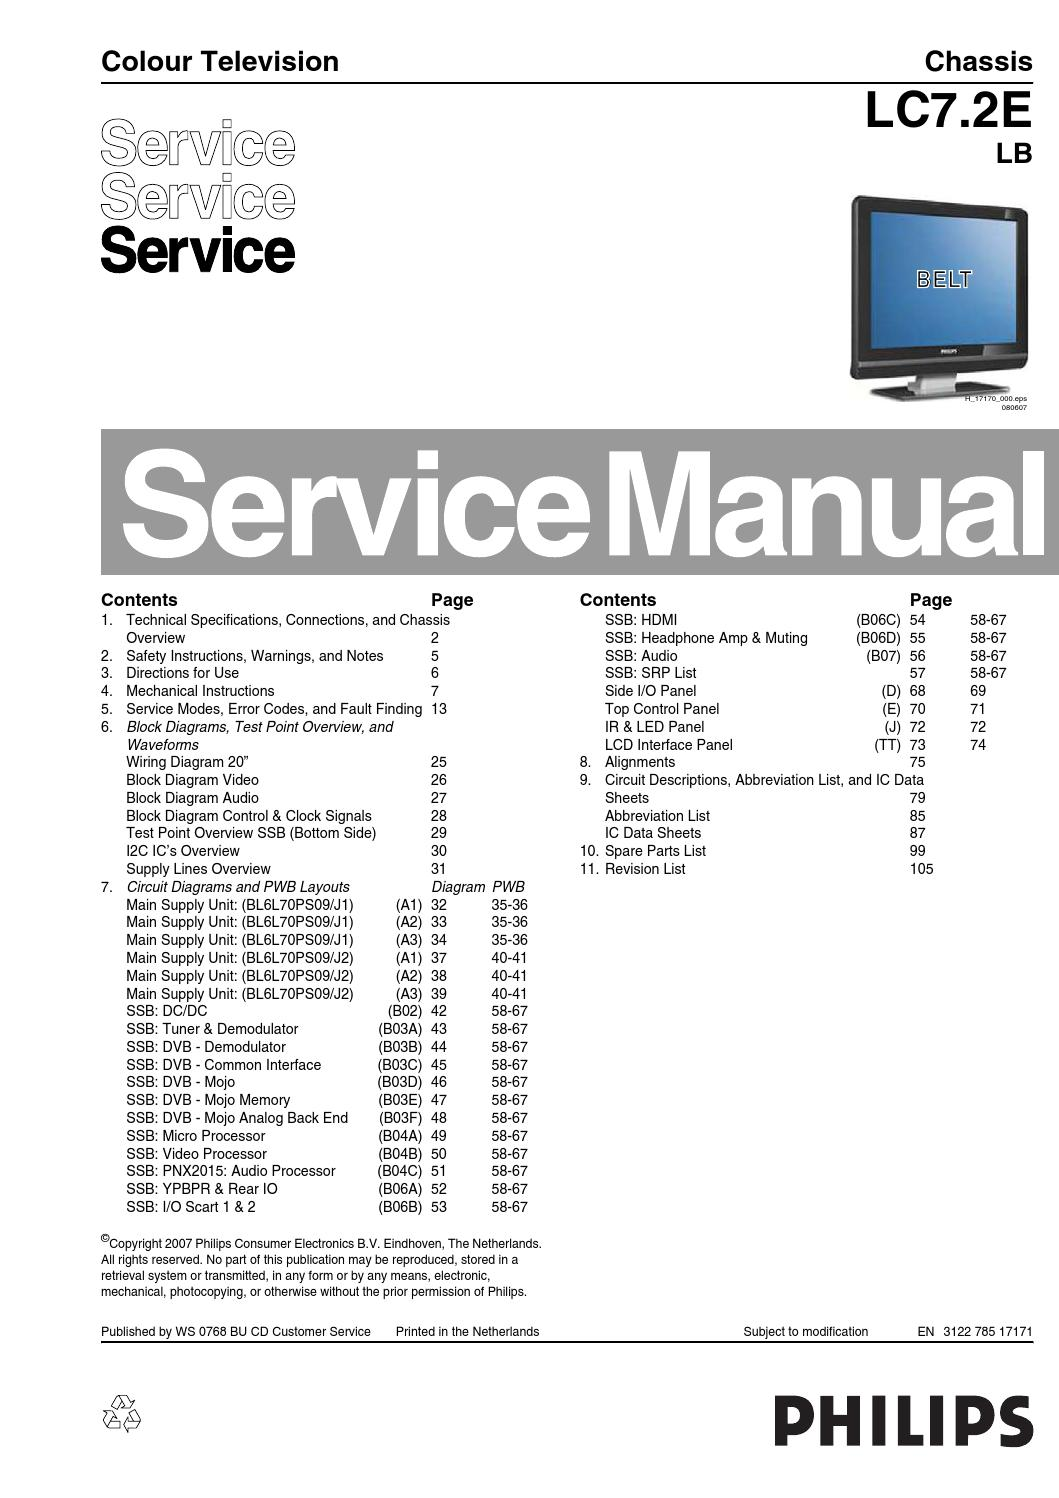 Manual De Servio Televisor Philips 19pfl5522d 12 Chassis Lc72e Lb Wiring Diagram Composite Video Cable To 15hd And S By Portal Da Eletrnica Issuu